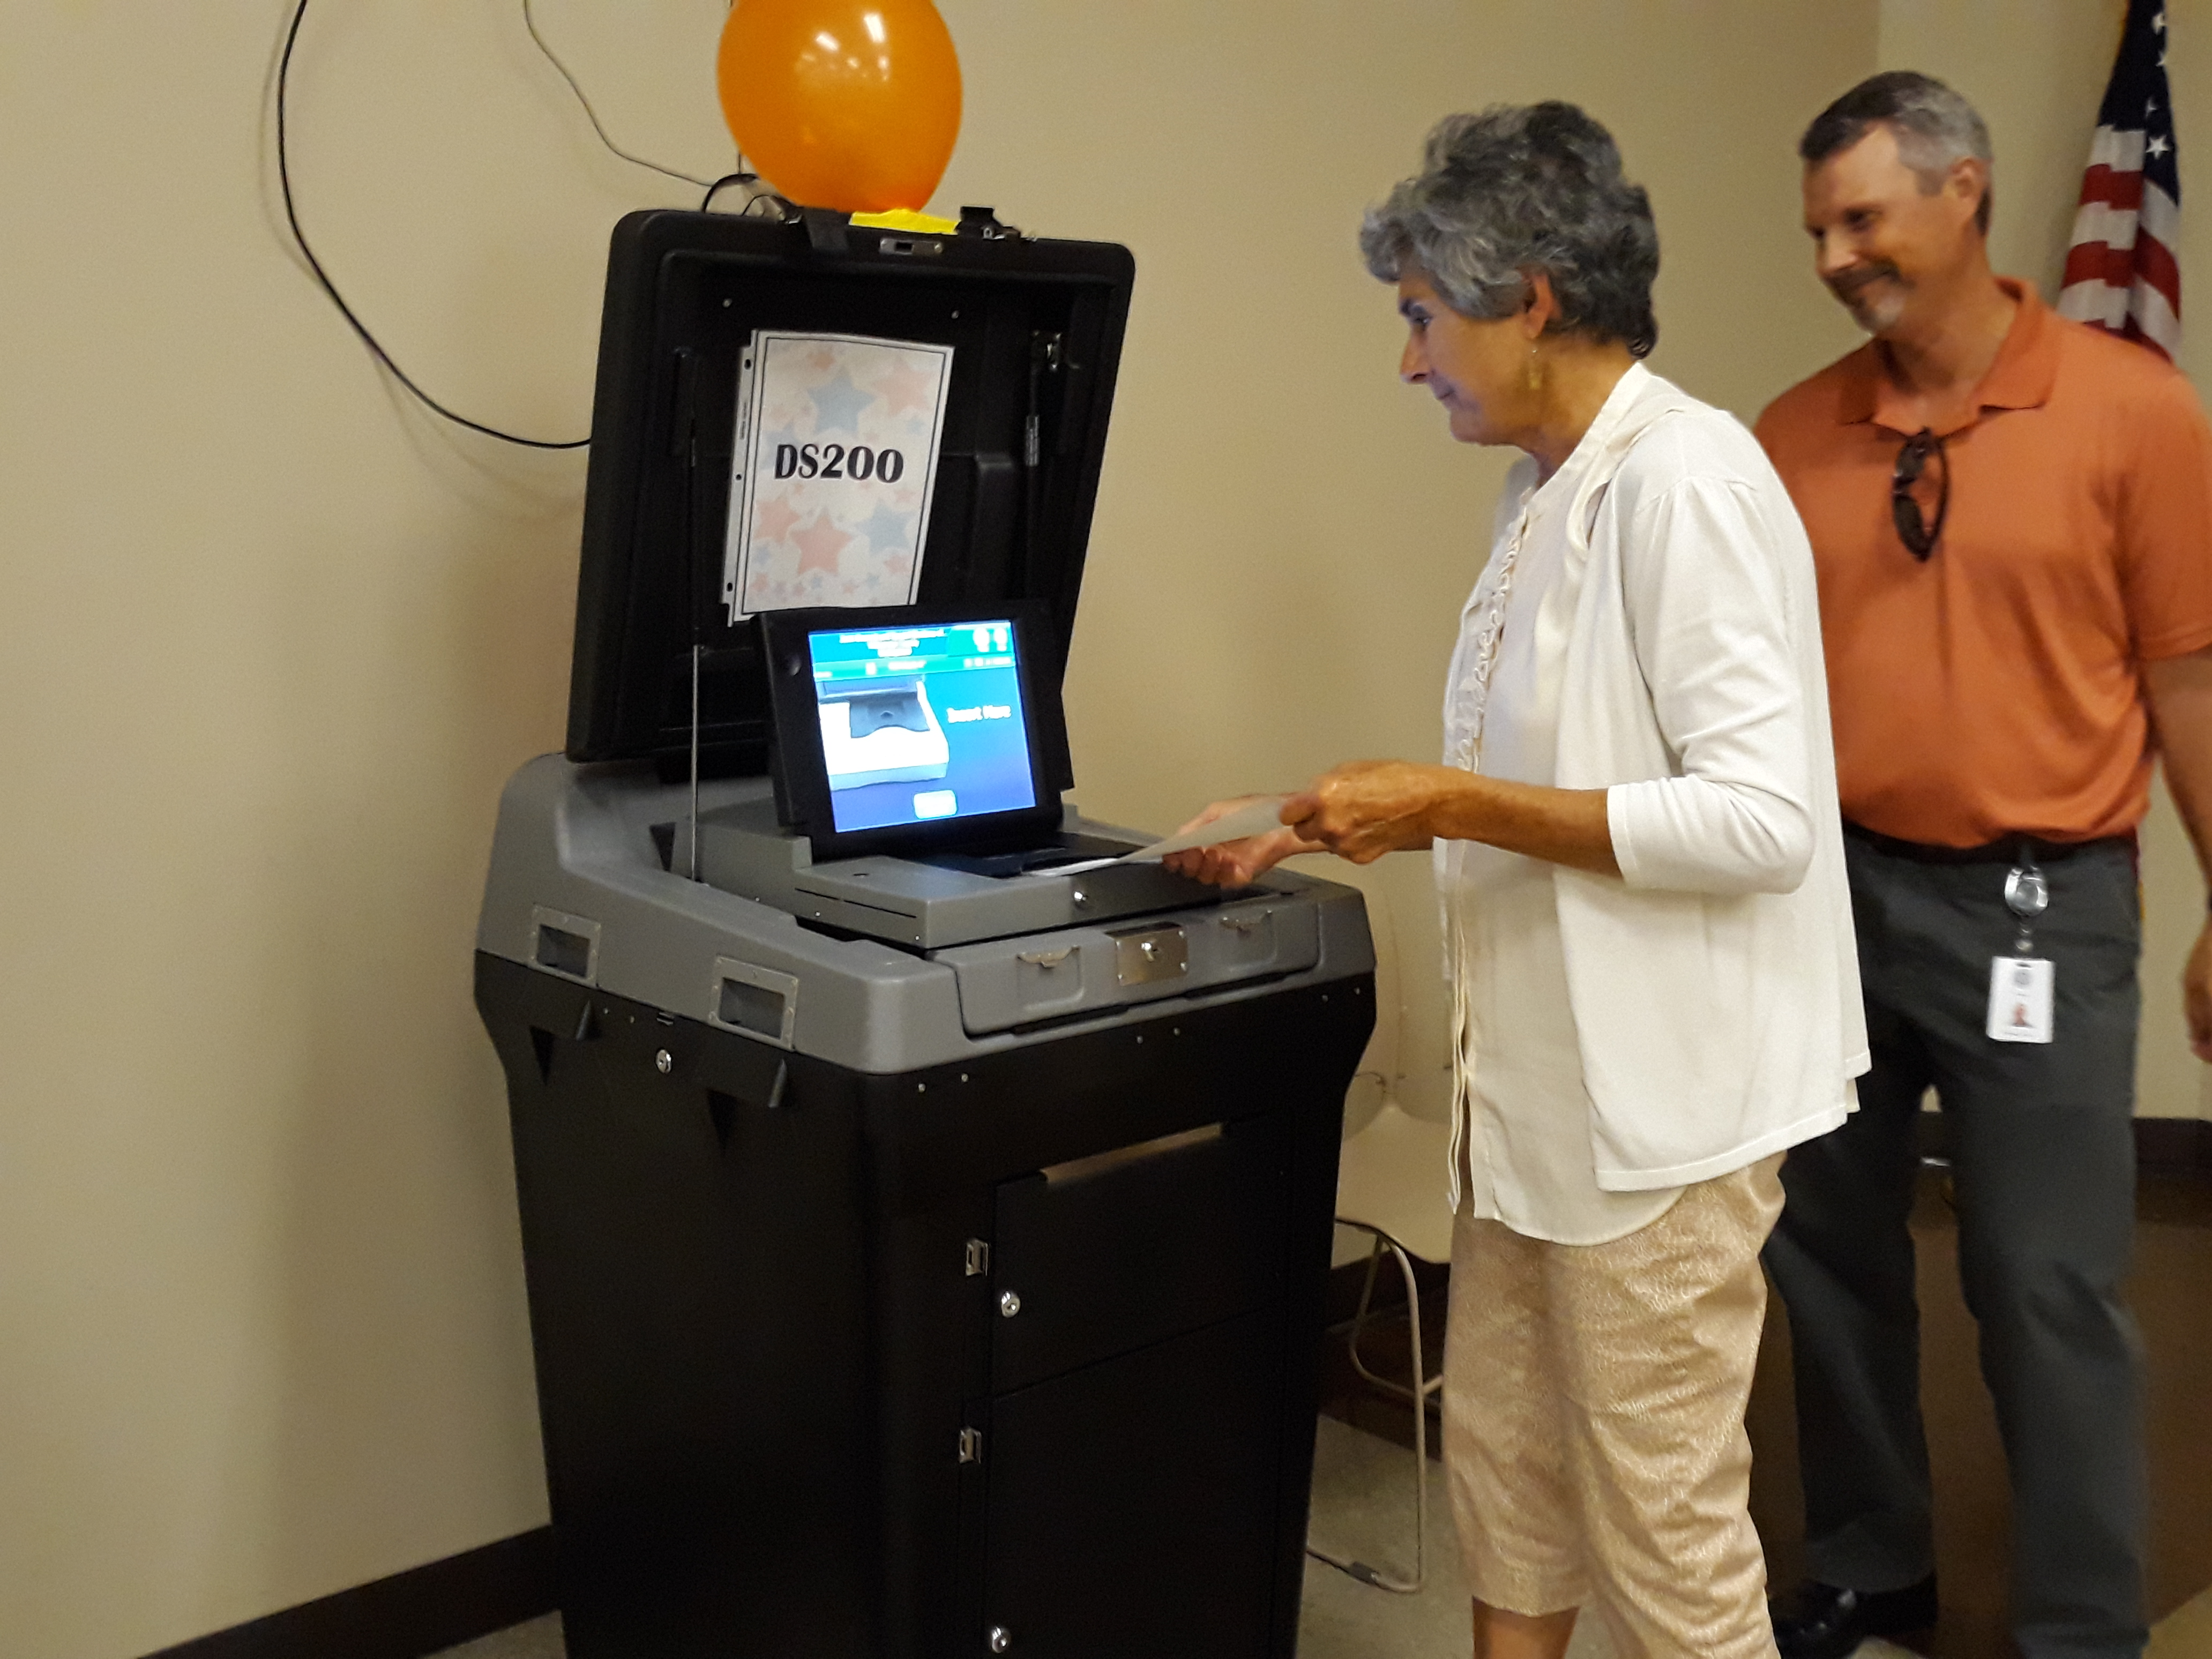 Commissioner Cook feeds her paper ballot to the scanning machine which will immediately show a message that she voted.